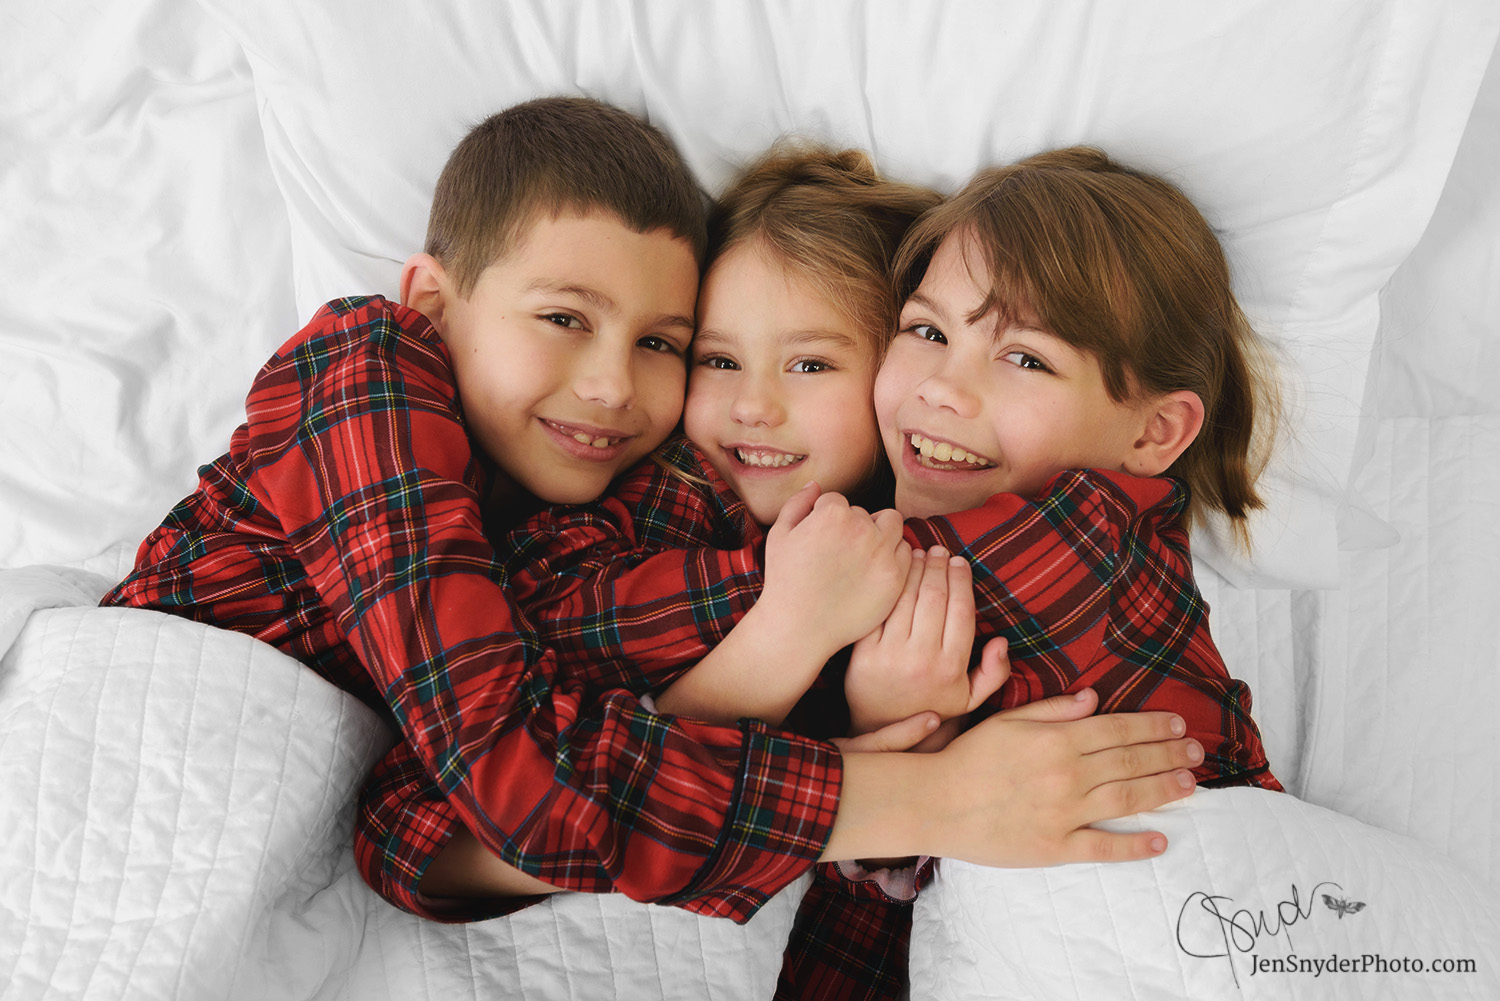 Christmas pajama portraits by Harford County childrens photographer Jen Snyder http://www.jensnyderphoto.com